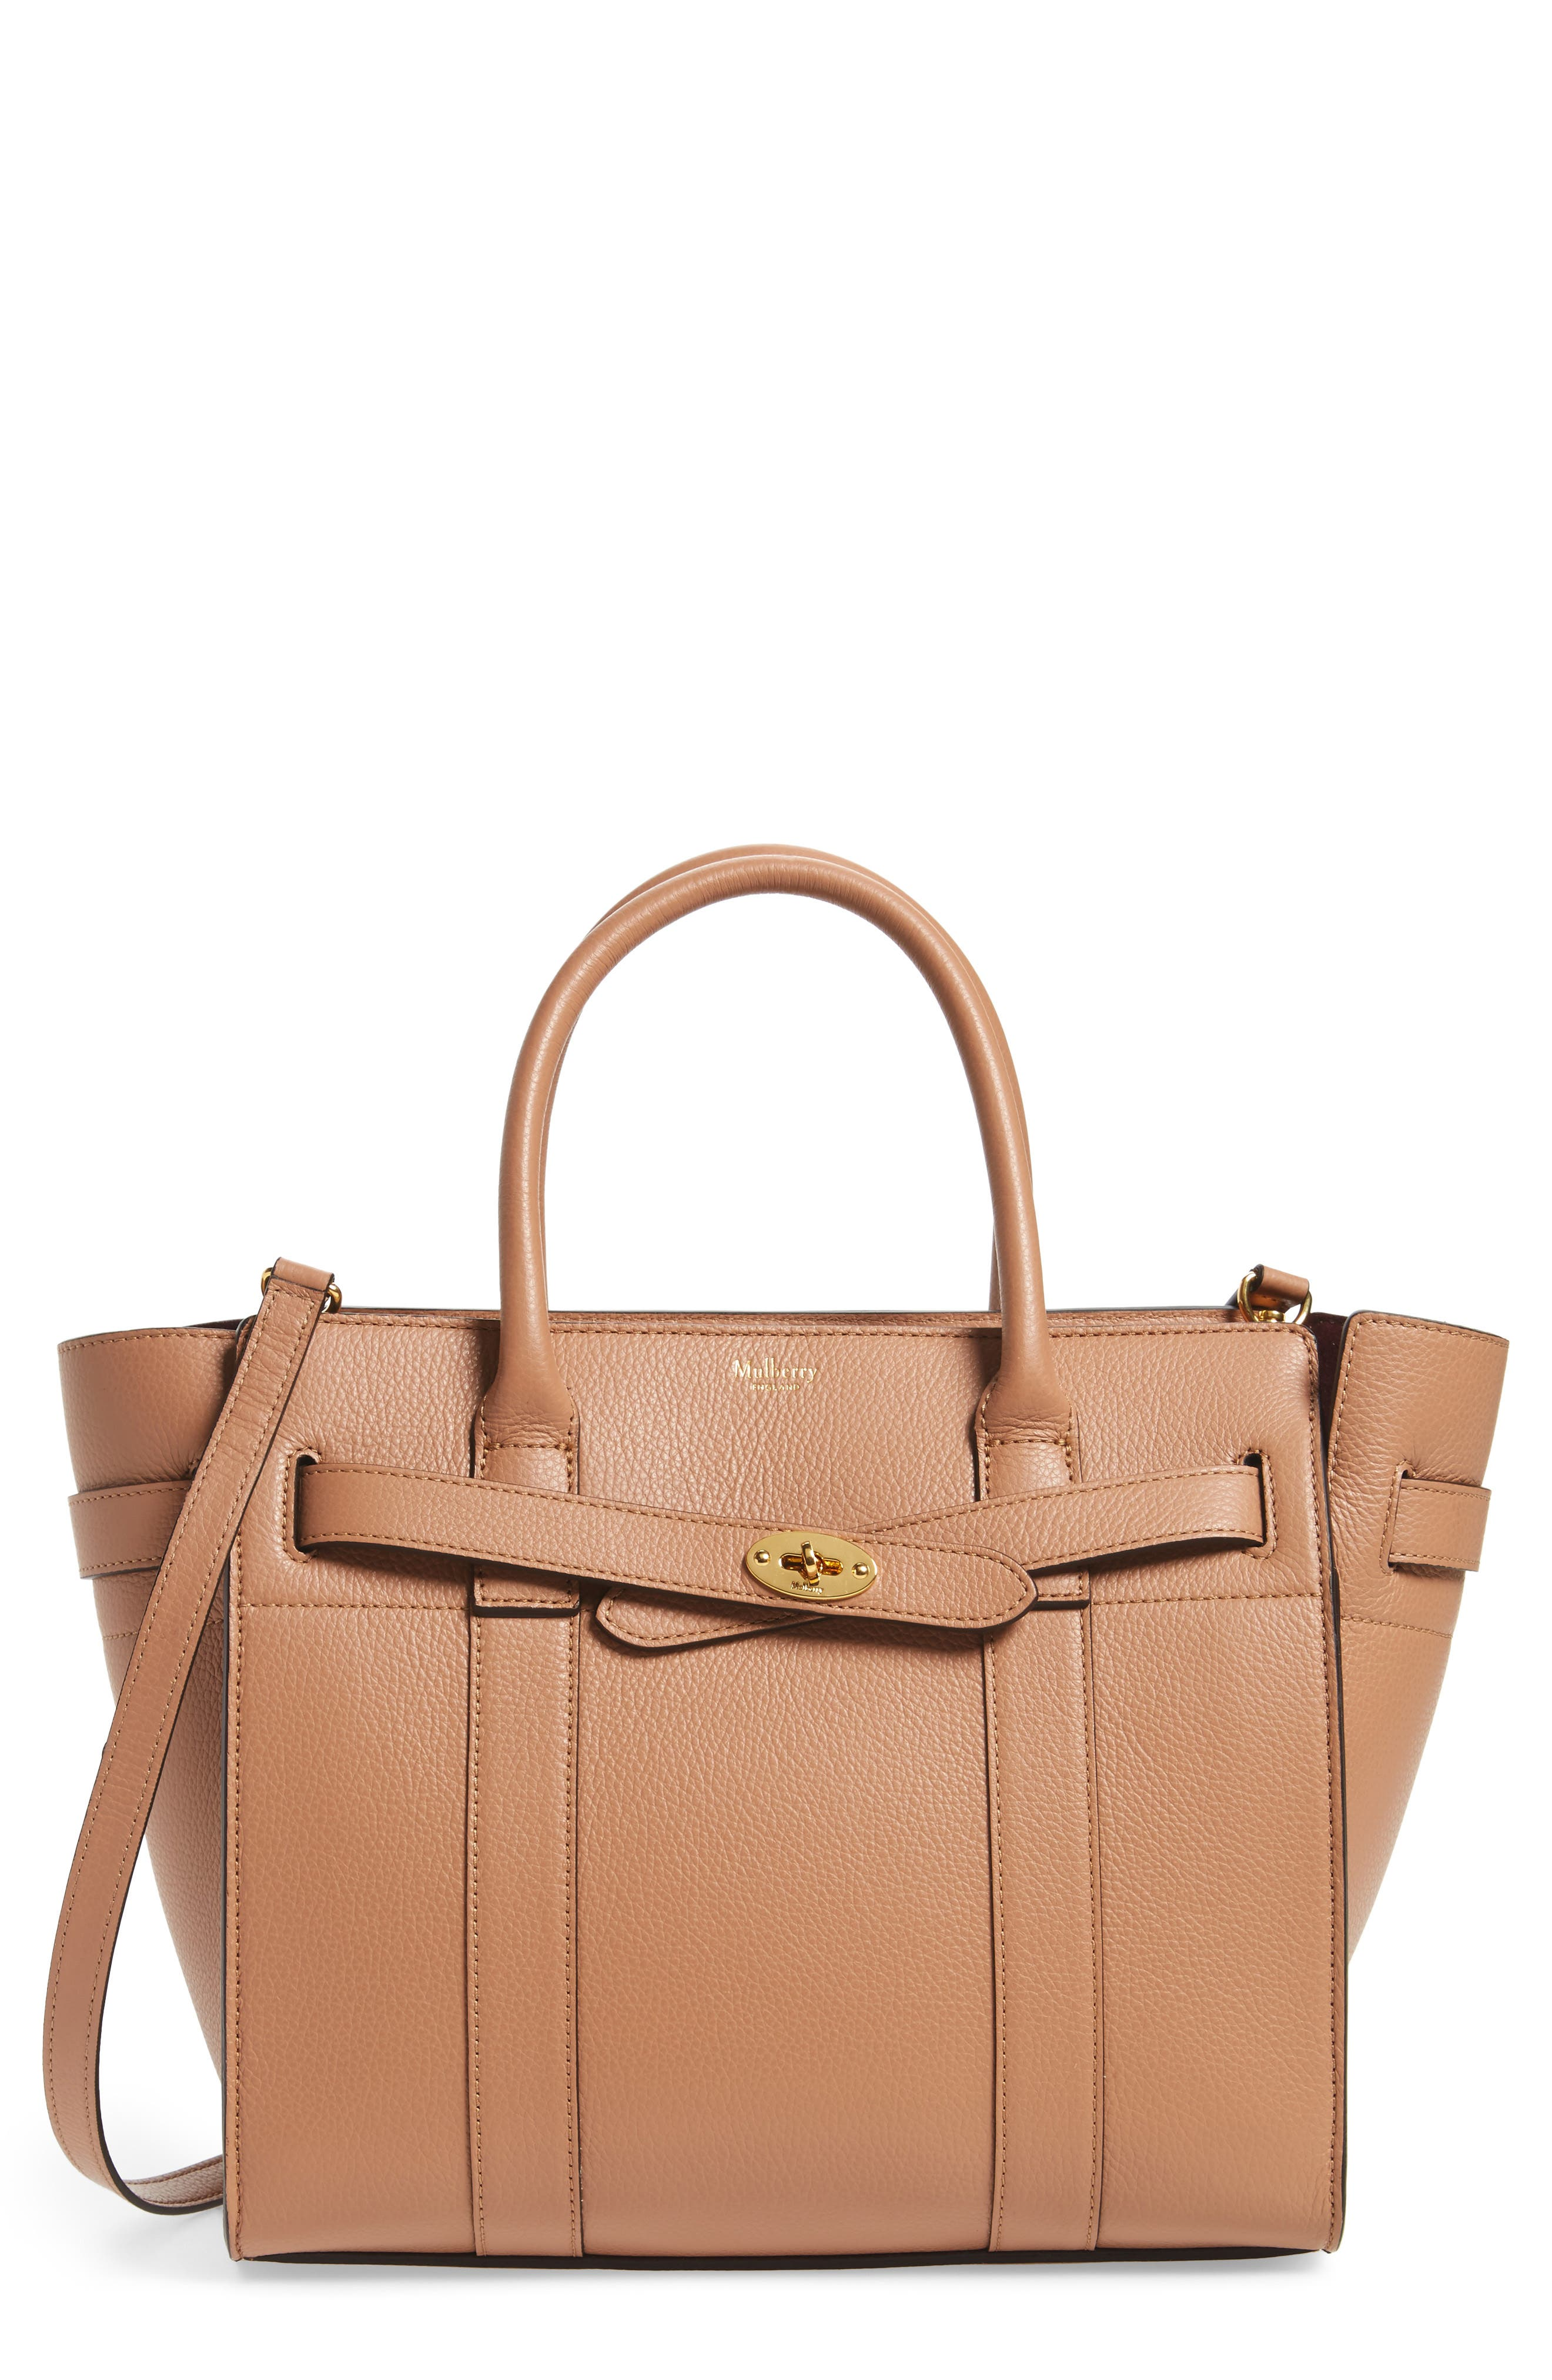 Alternate Image 1 Selected - Mulberry Small Zip Bayswater Classic Leather Tote